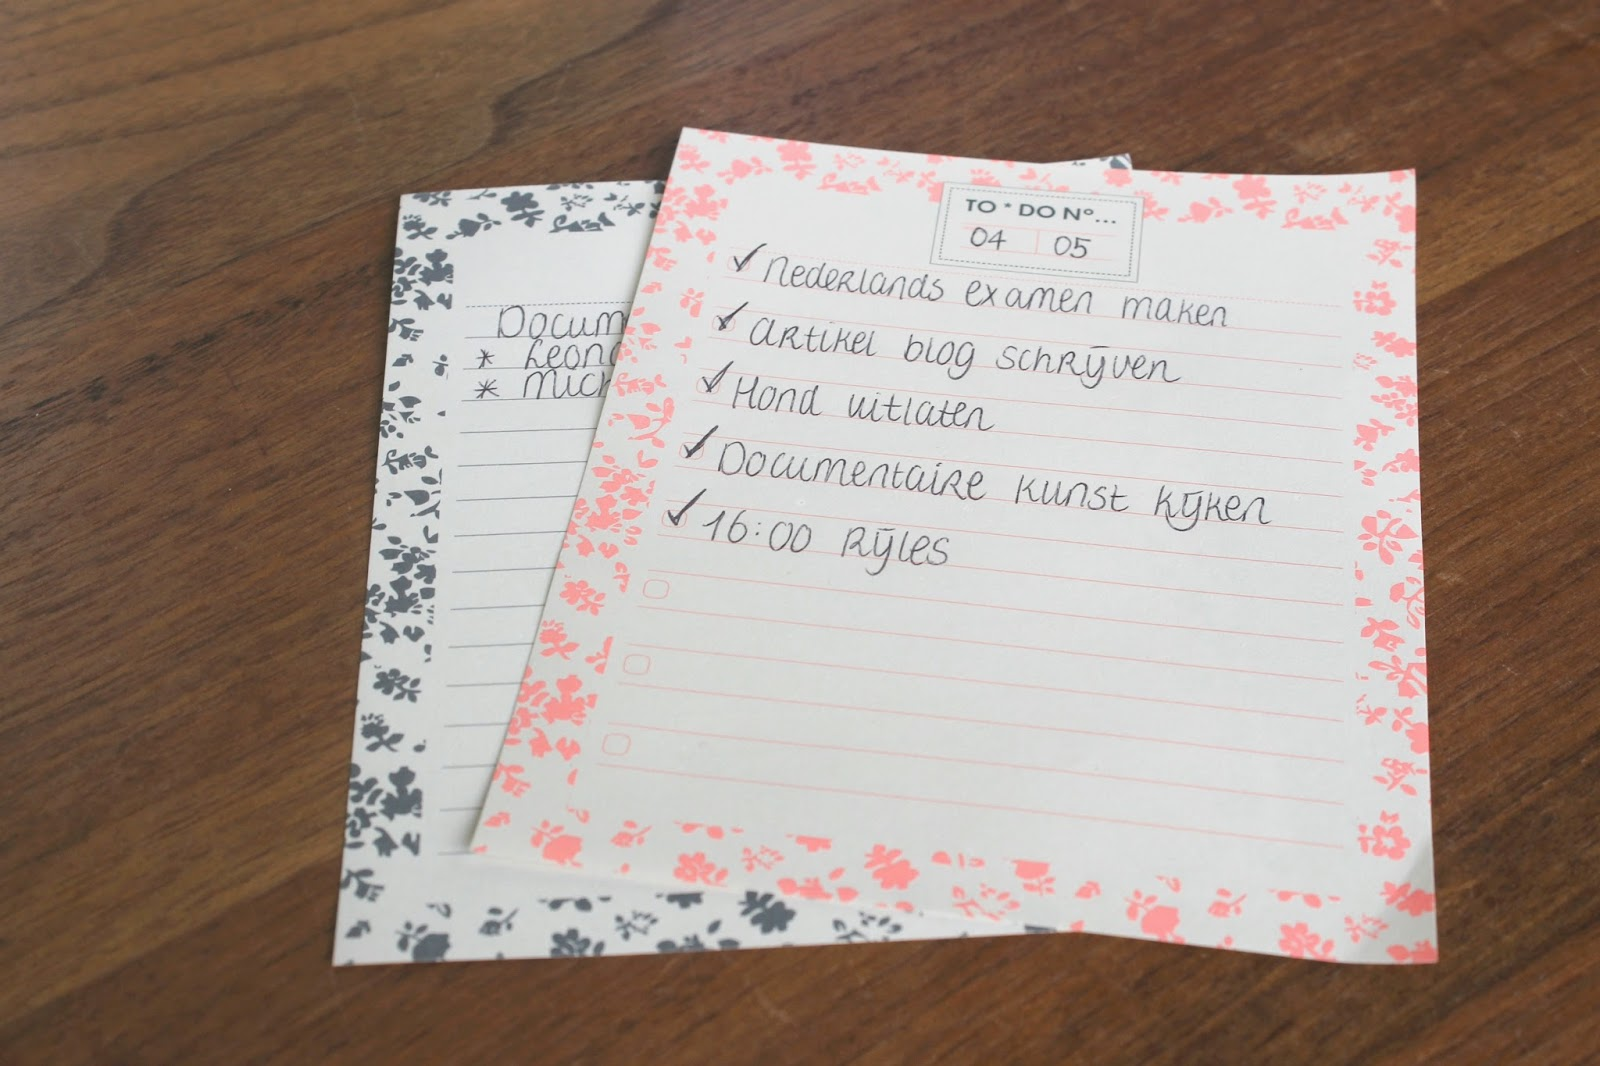 Notitieboekje Maken To Do List Maken Hema Notitieboekje Nature Of Happiness